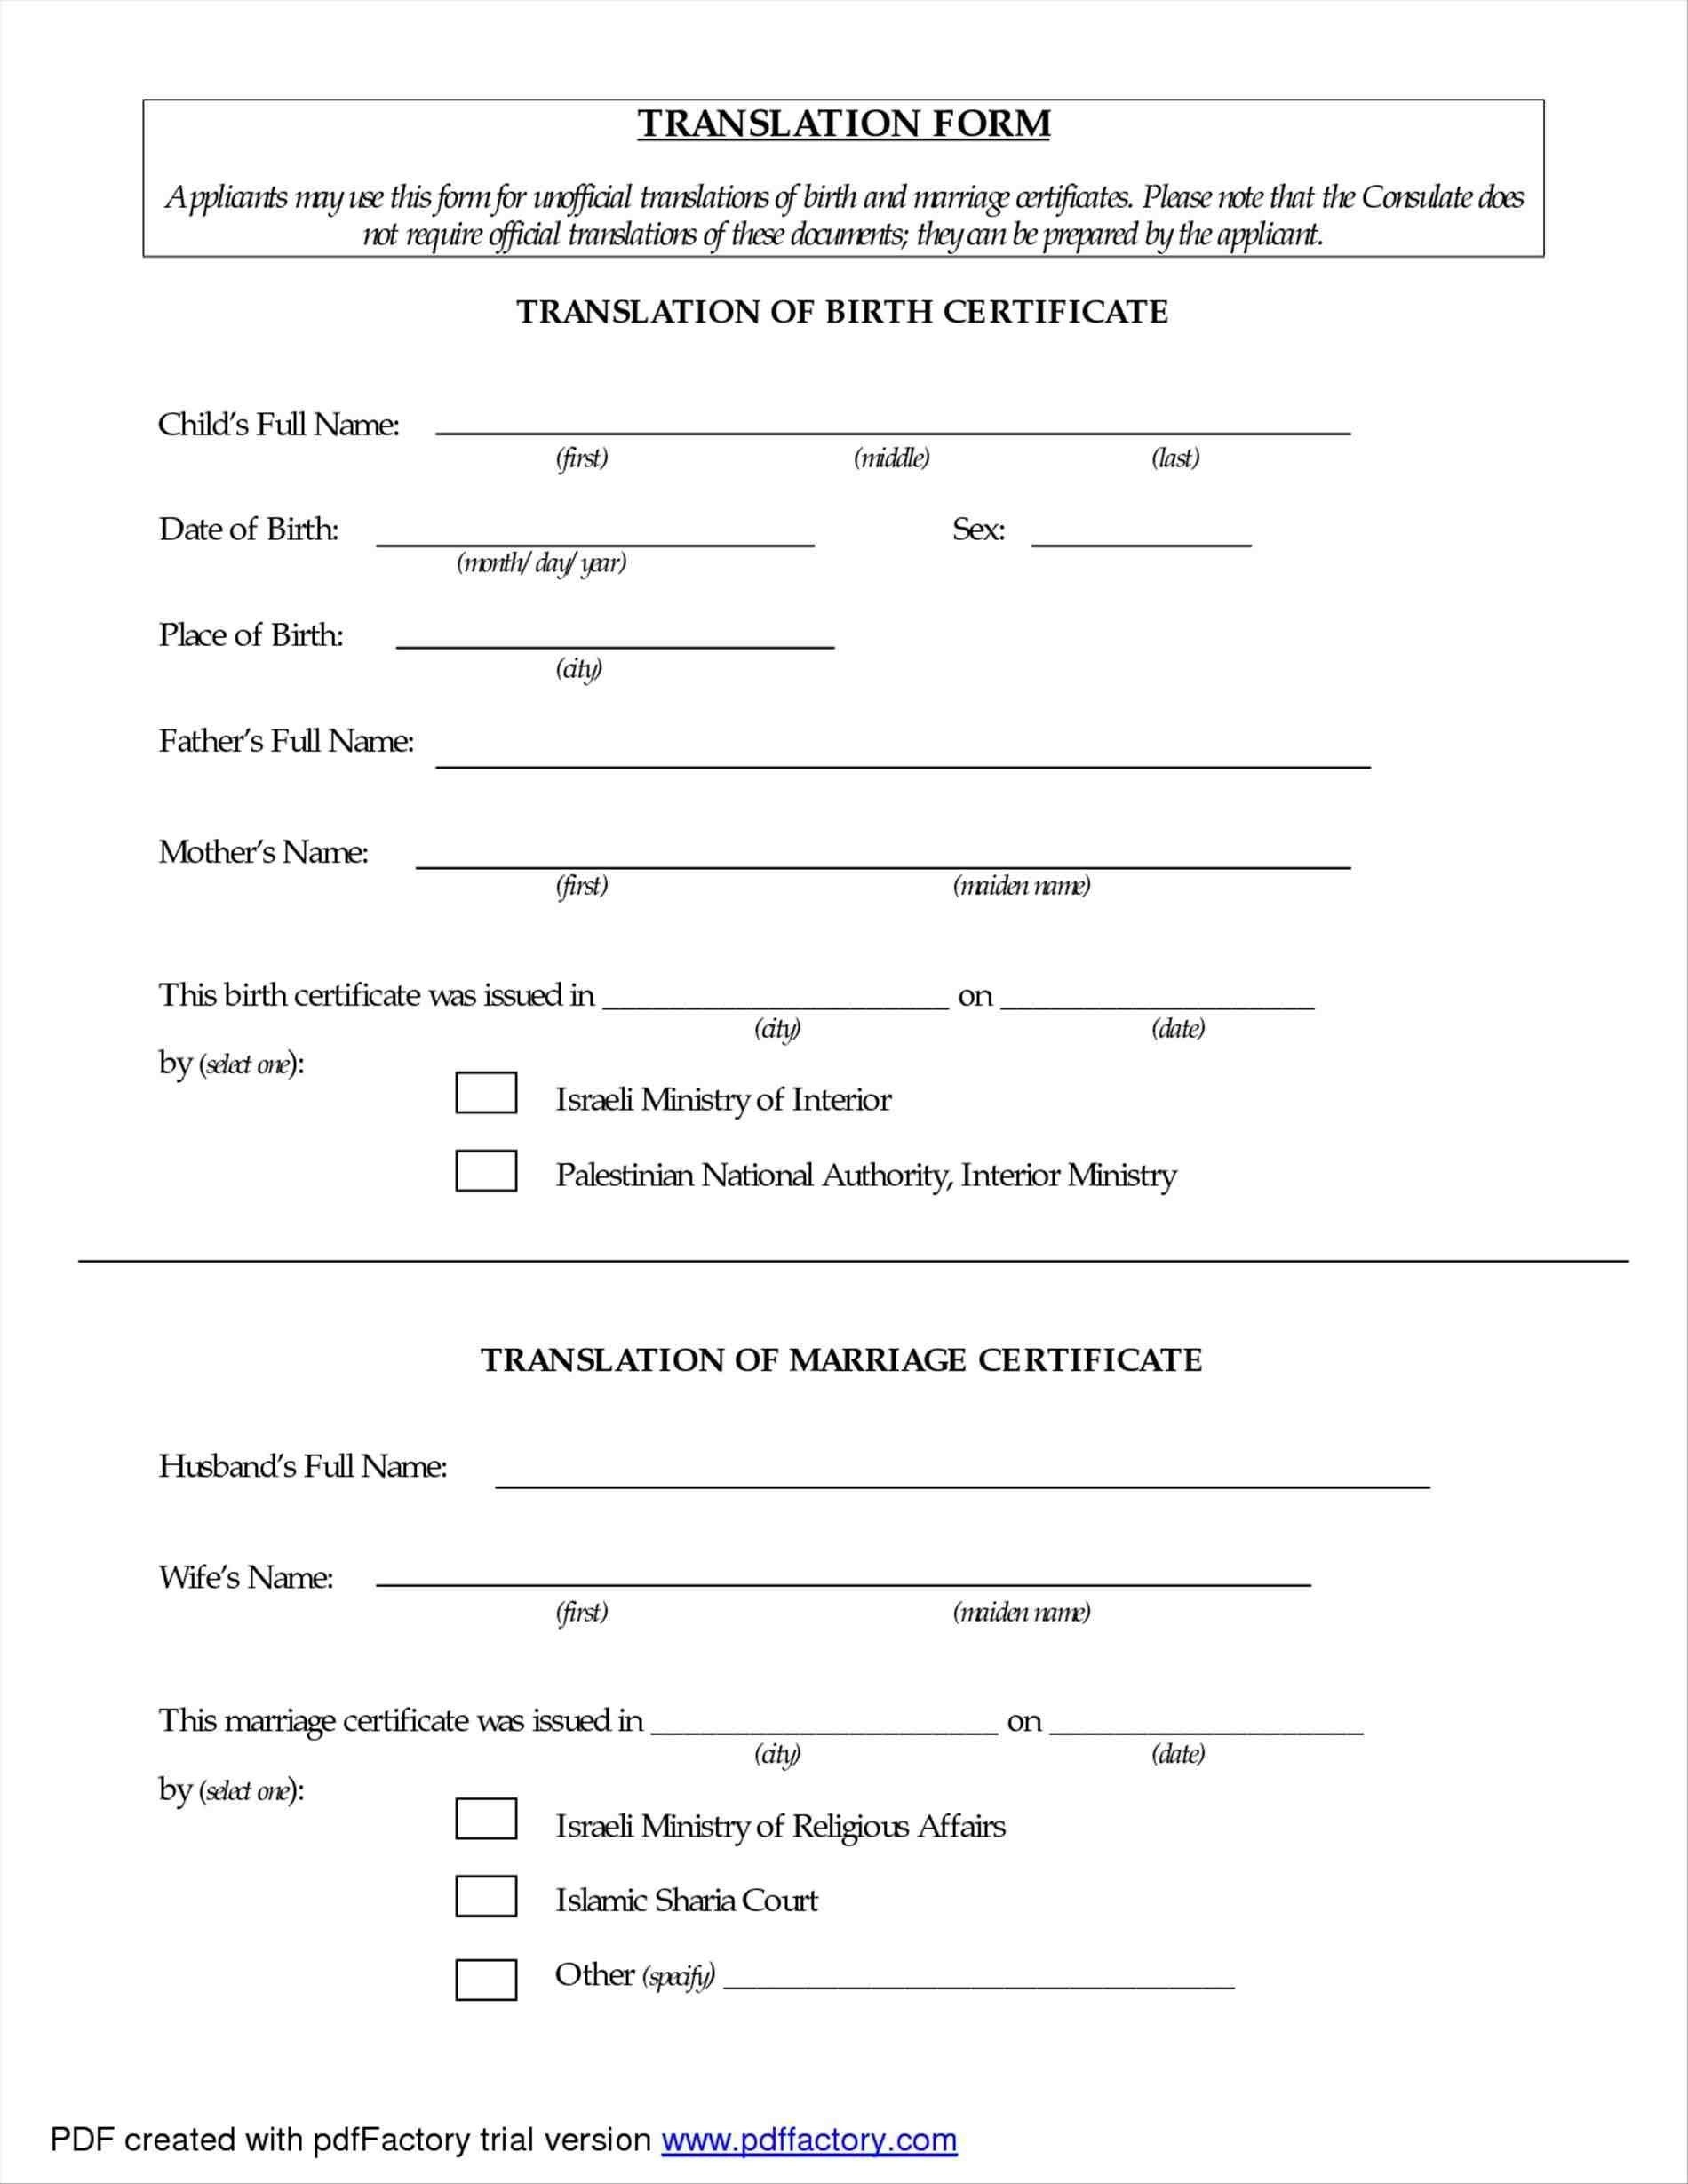 Translate Marriage Certificate From Spanish To English Template Inside Marriage Certificate Translation From Spanish To English Template